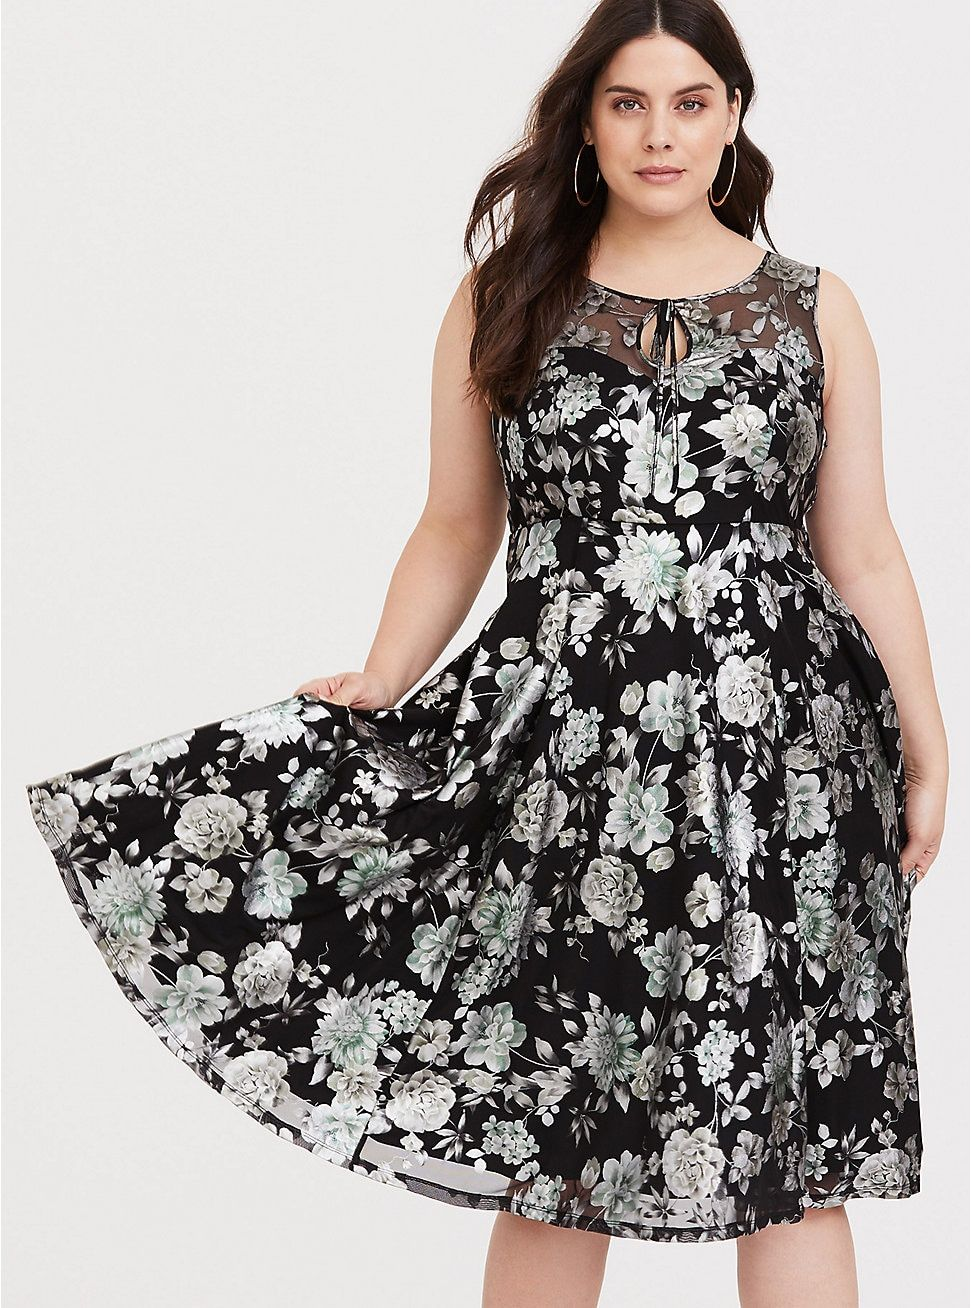 Retro Chic Floral Illusion Midi Skater Dress in 2019 ...